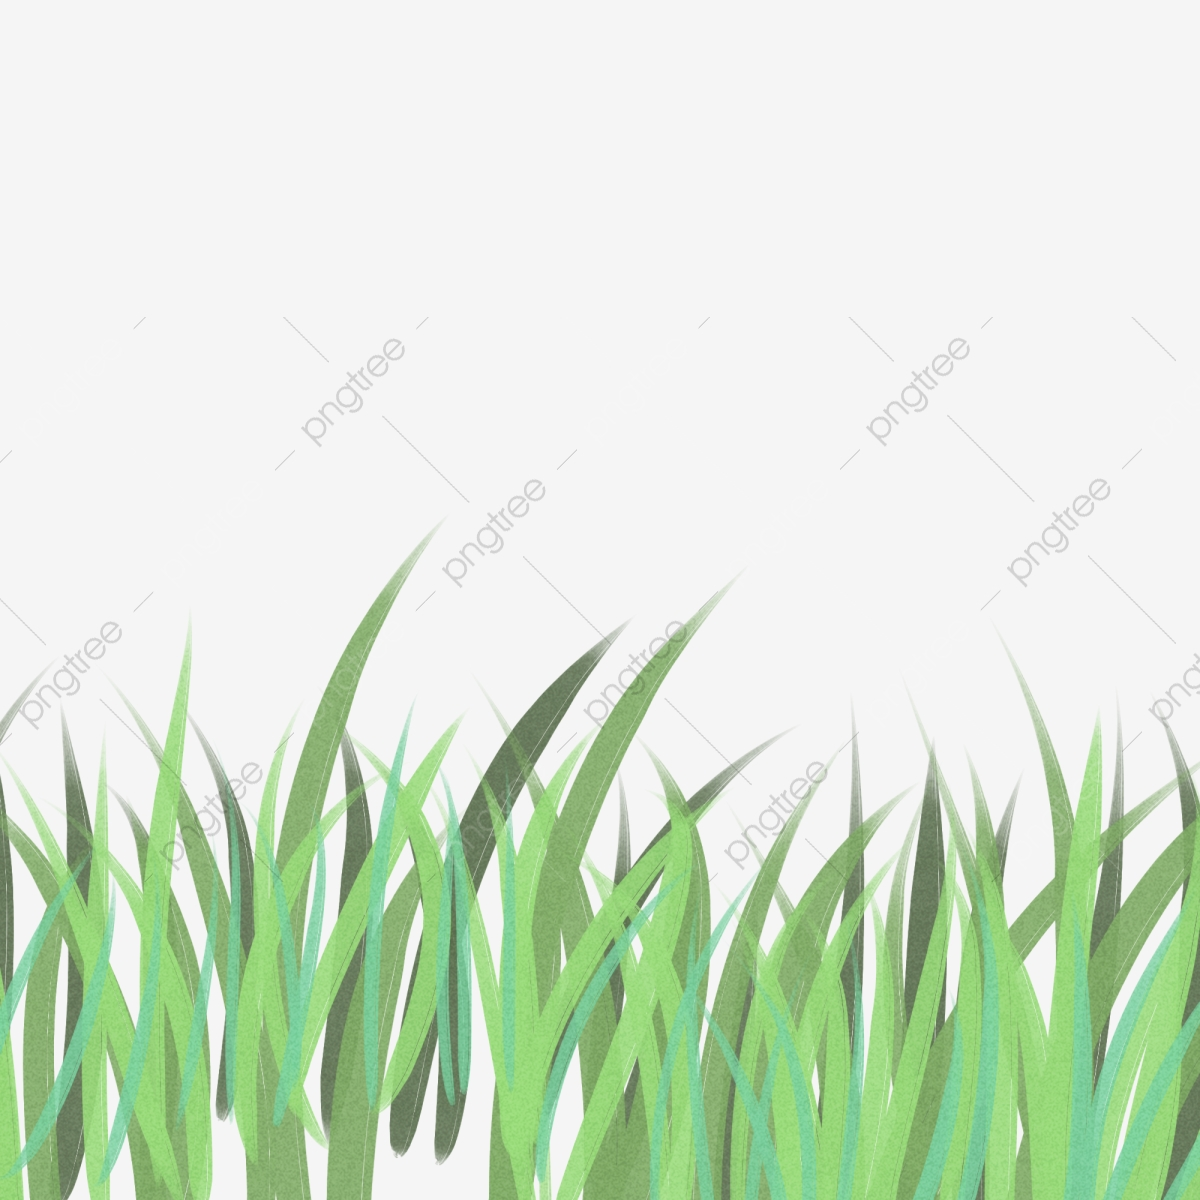 Cartoon Grass Png Images Vector And Psd Files Free Download On Pngtree